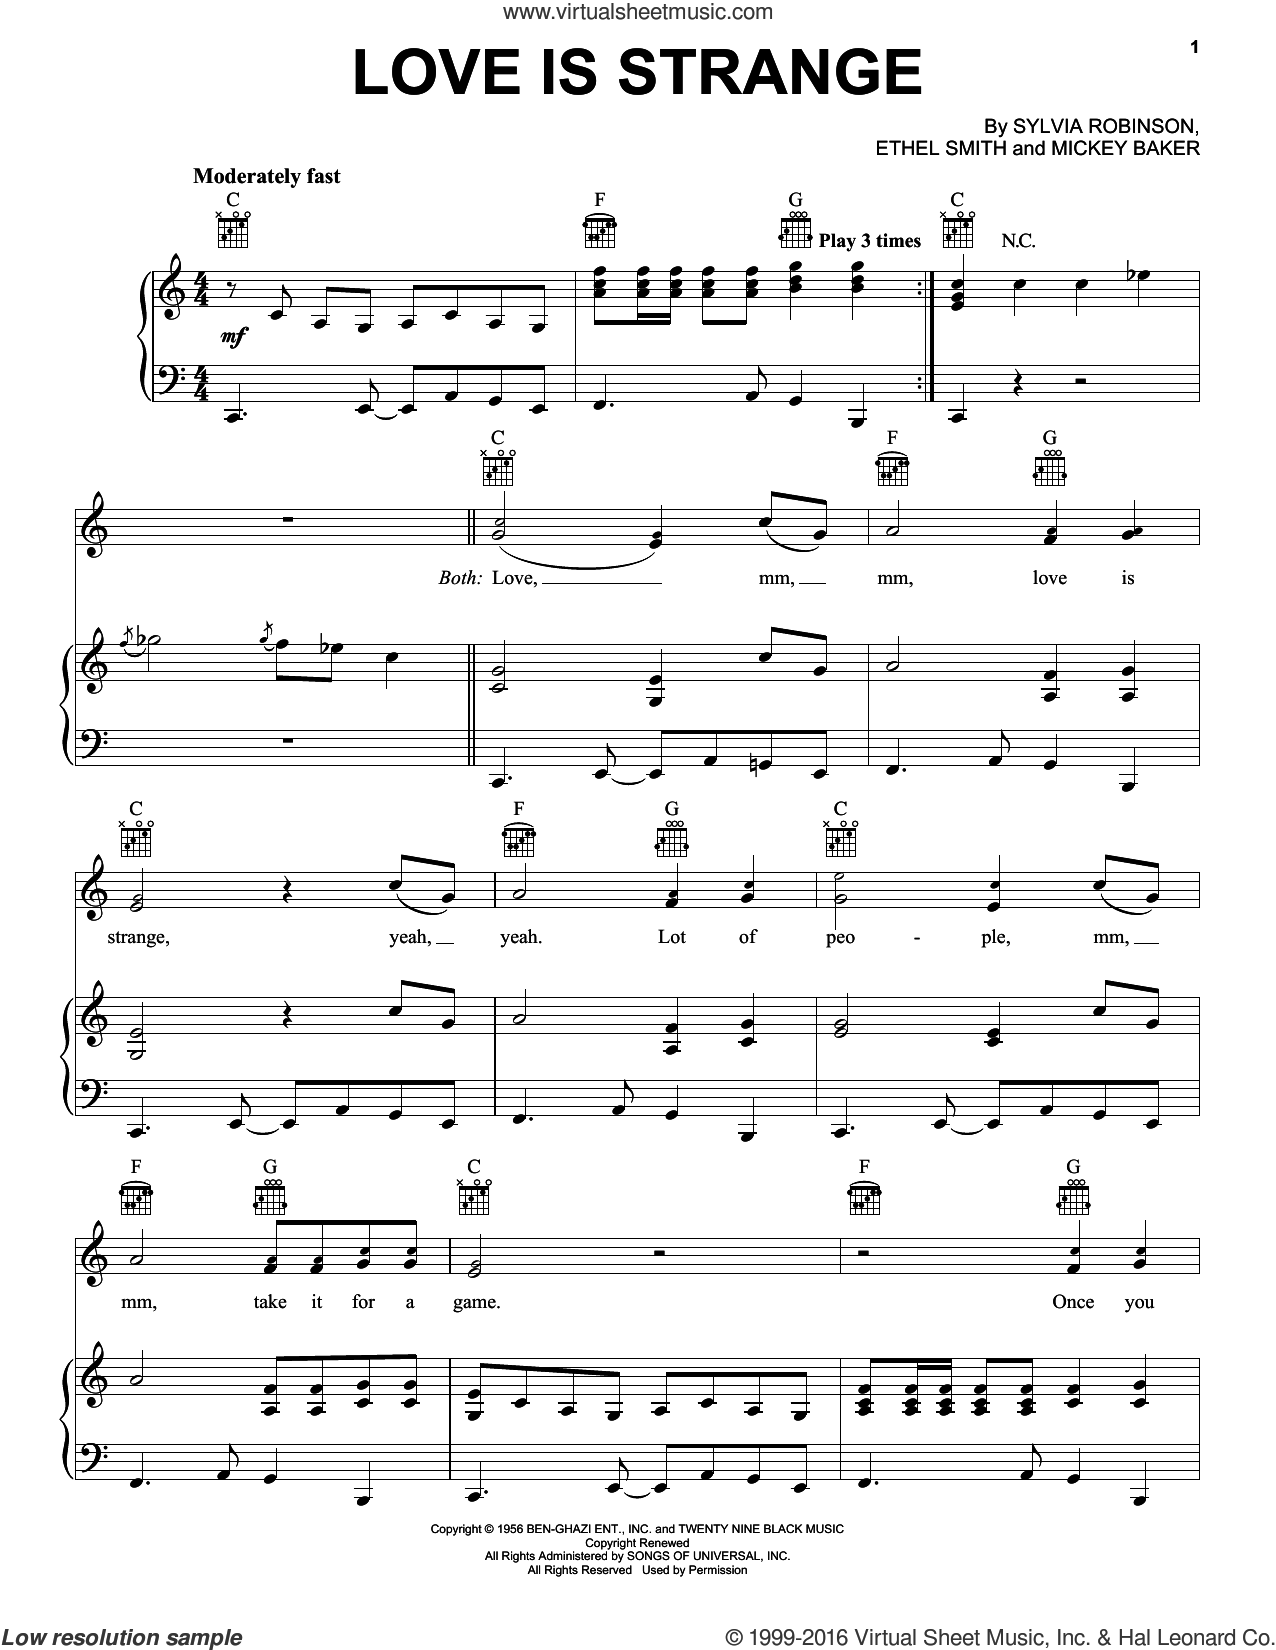 Love Is Strange sheet music for voice, piano or guitar by Sylvia Robinson. Score Image Preview.